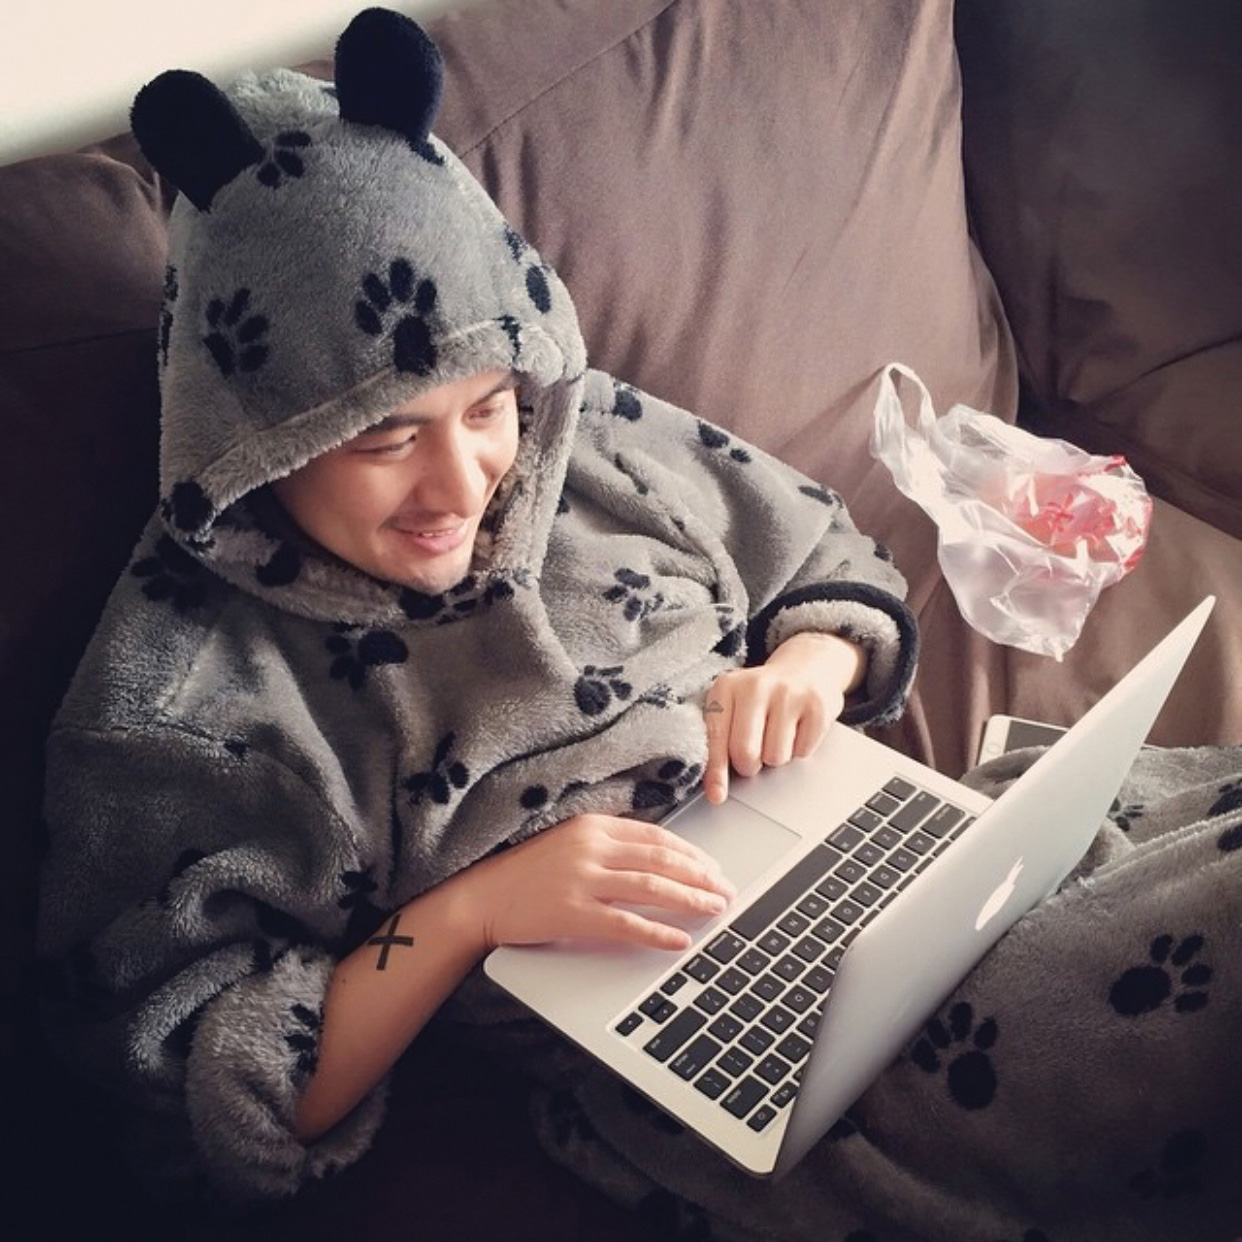 Hard at work on his Weibo